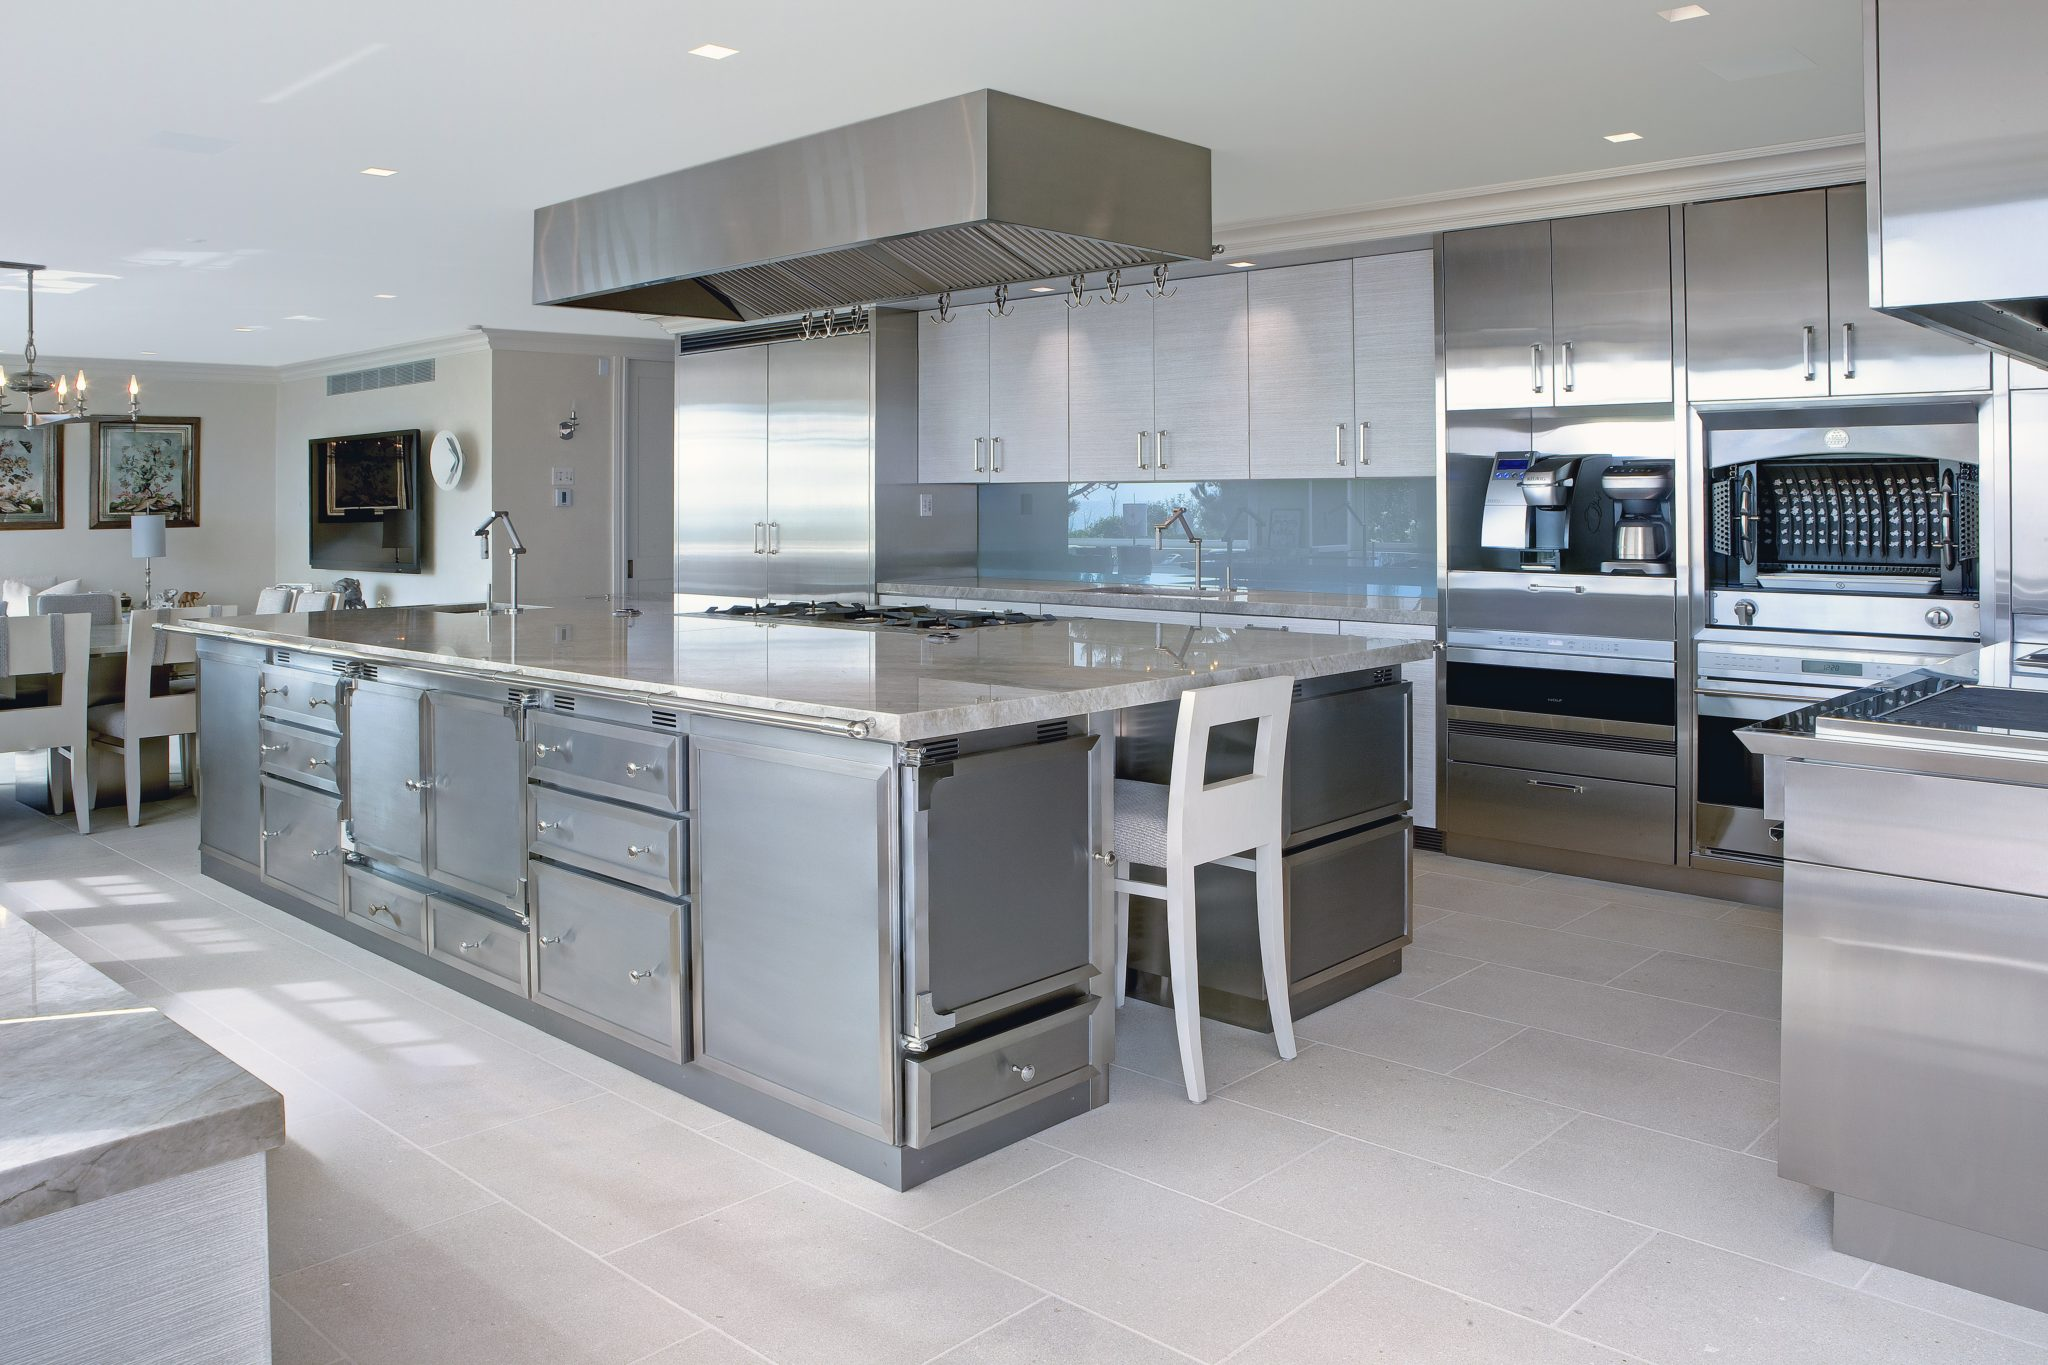 Hamptons kitchen by St. Charles of New York